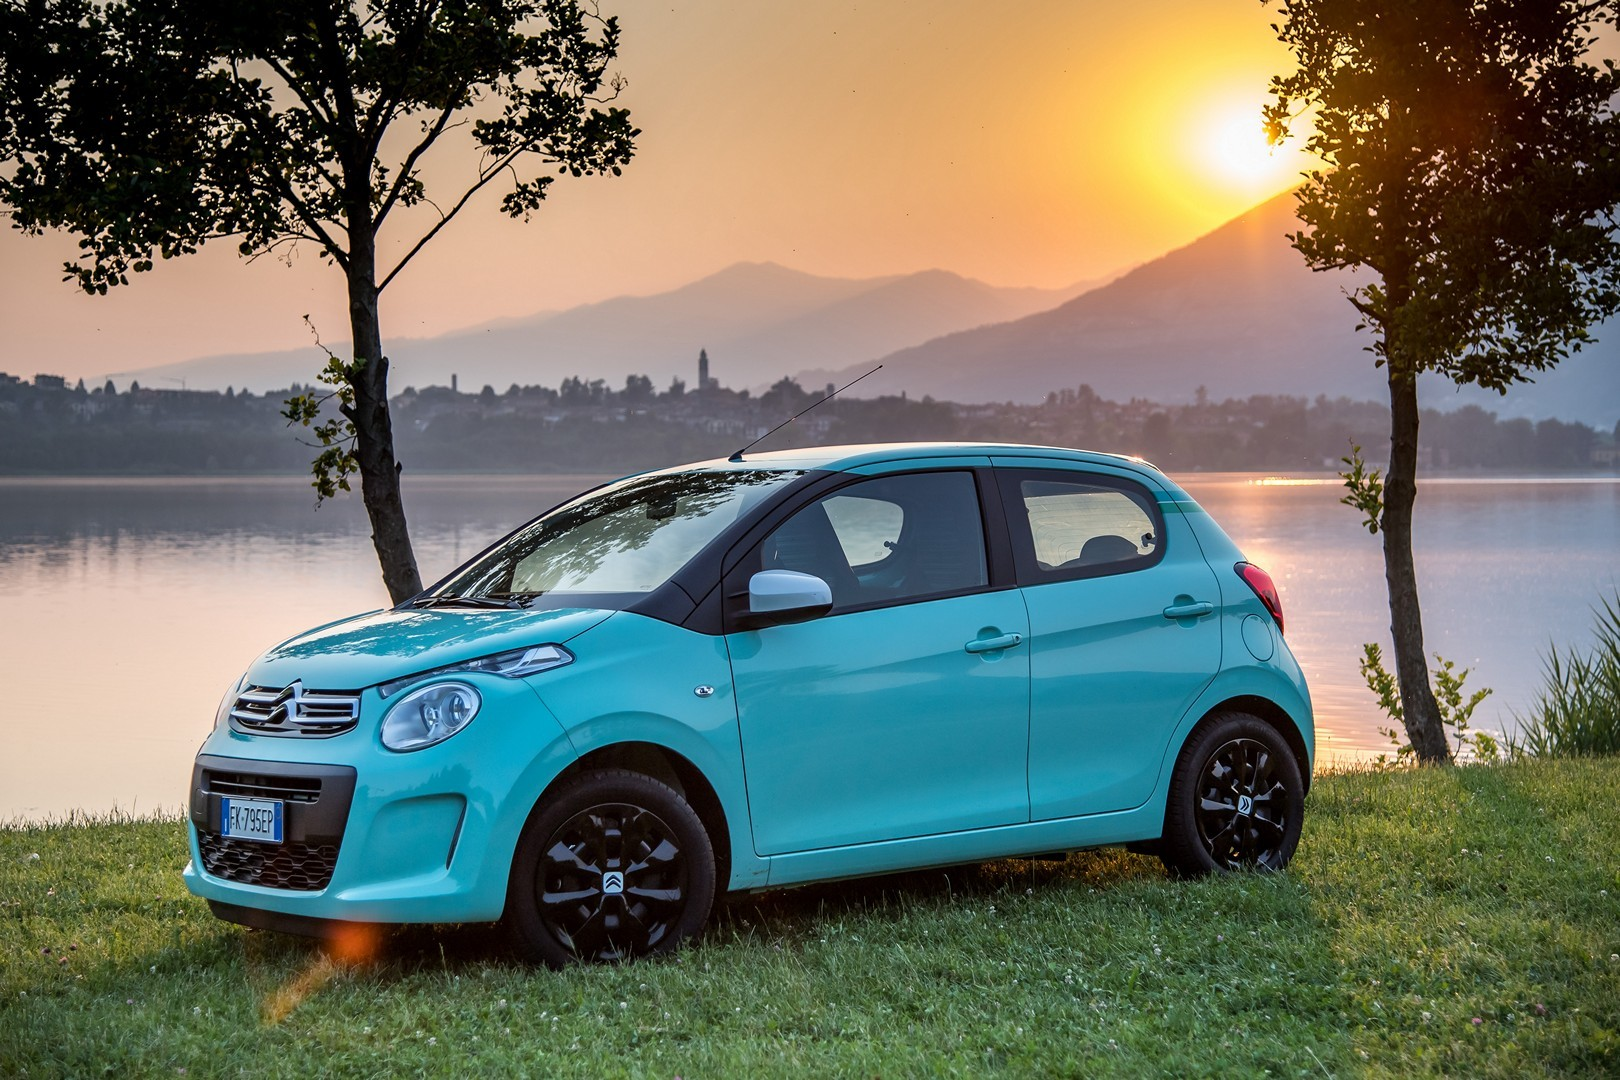 citroen c1 pacific edition has a cute color is only available in italy autoevolution. Black Bedroom Furniture Sets. Home Design Ideas